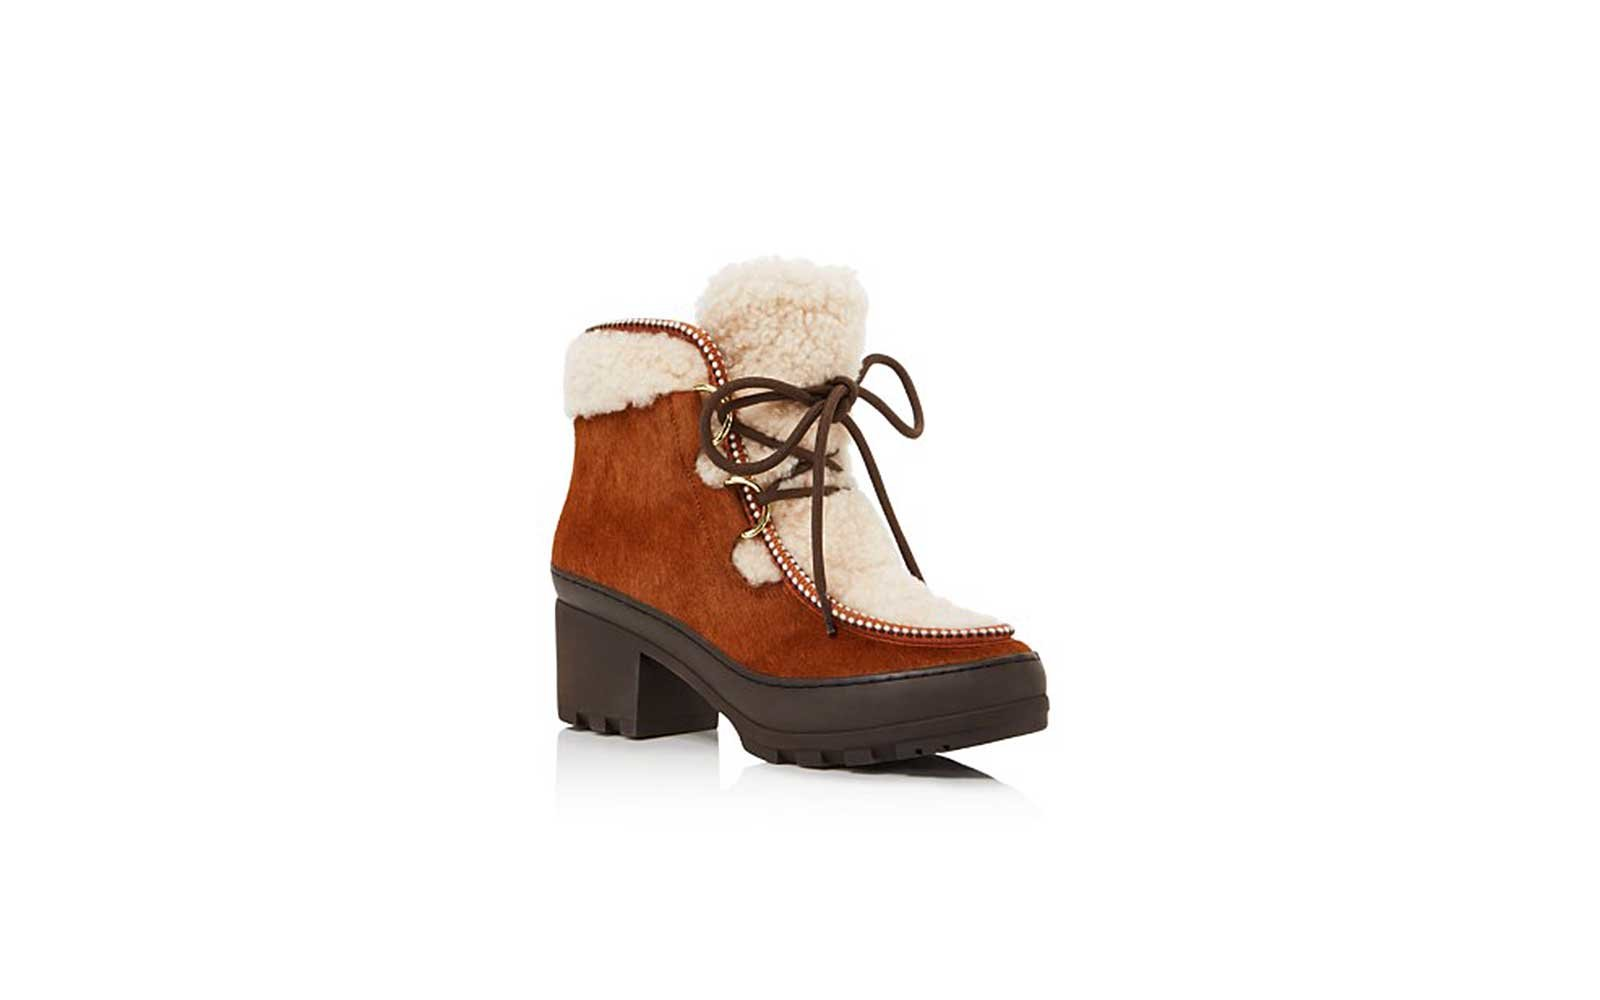 Tory Burch Berkley Booties